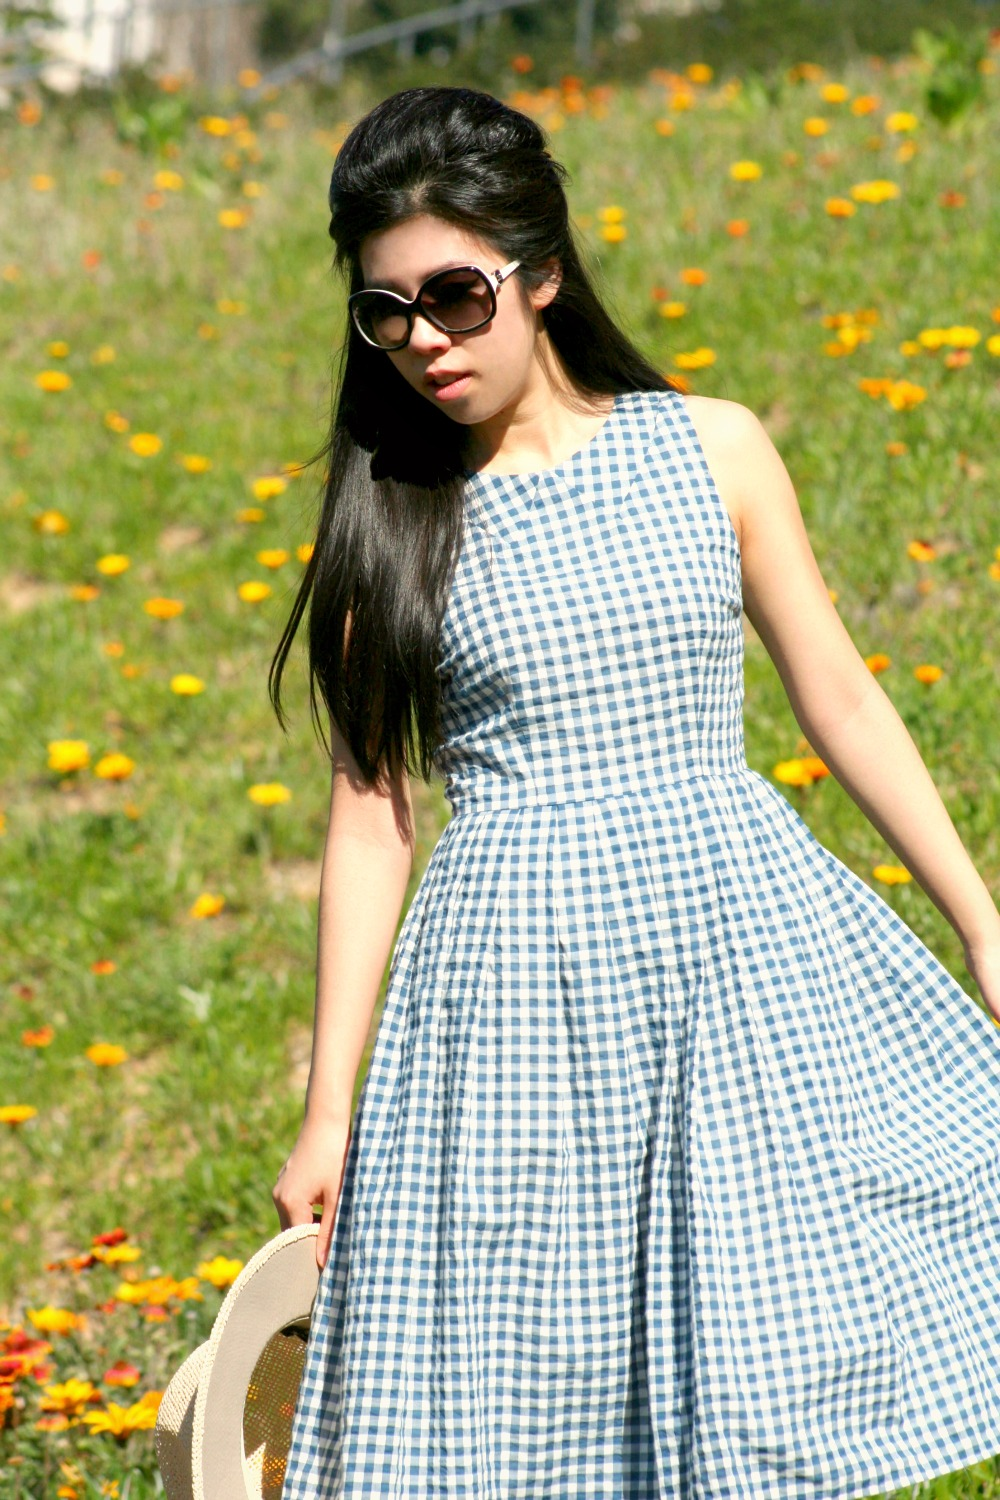 What to Wear to a Tea Party_Spring Fashion Trends_Gingham Dresses_Adrienne Nguyen_Invictus